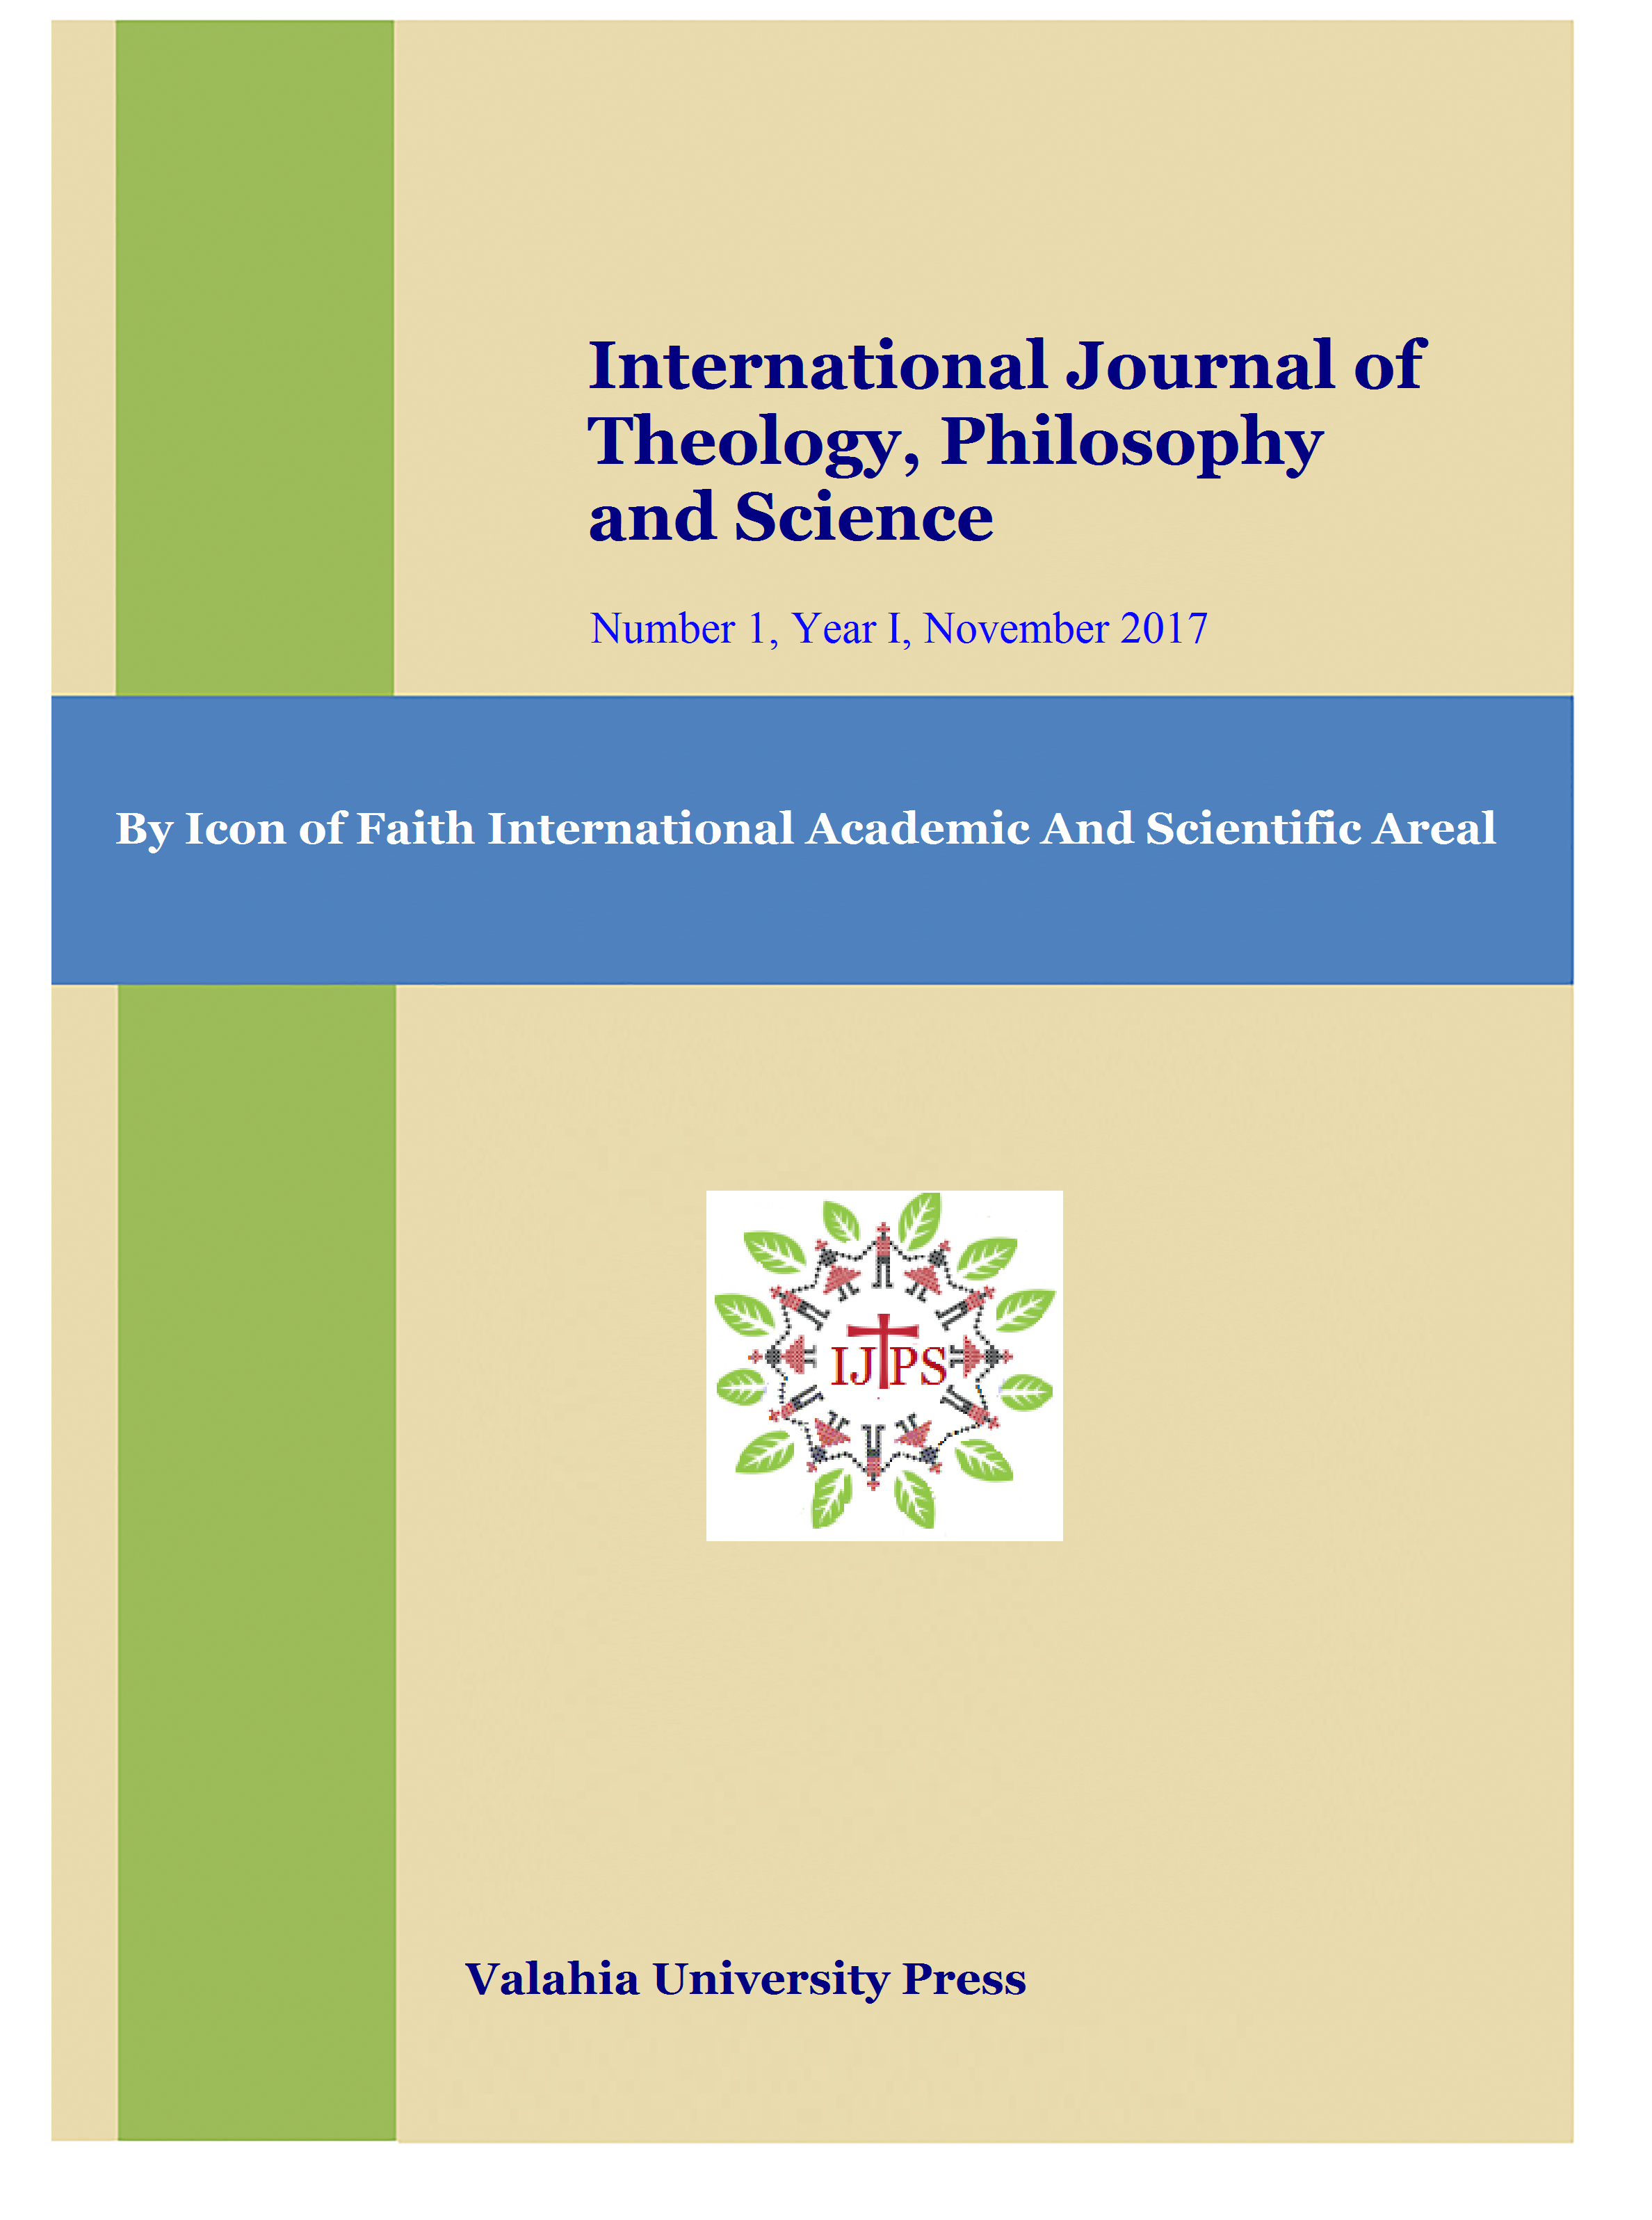 International Journal of Theology, Philosophy and Science Cover Image